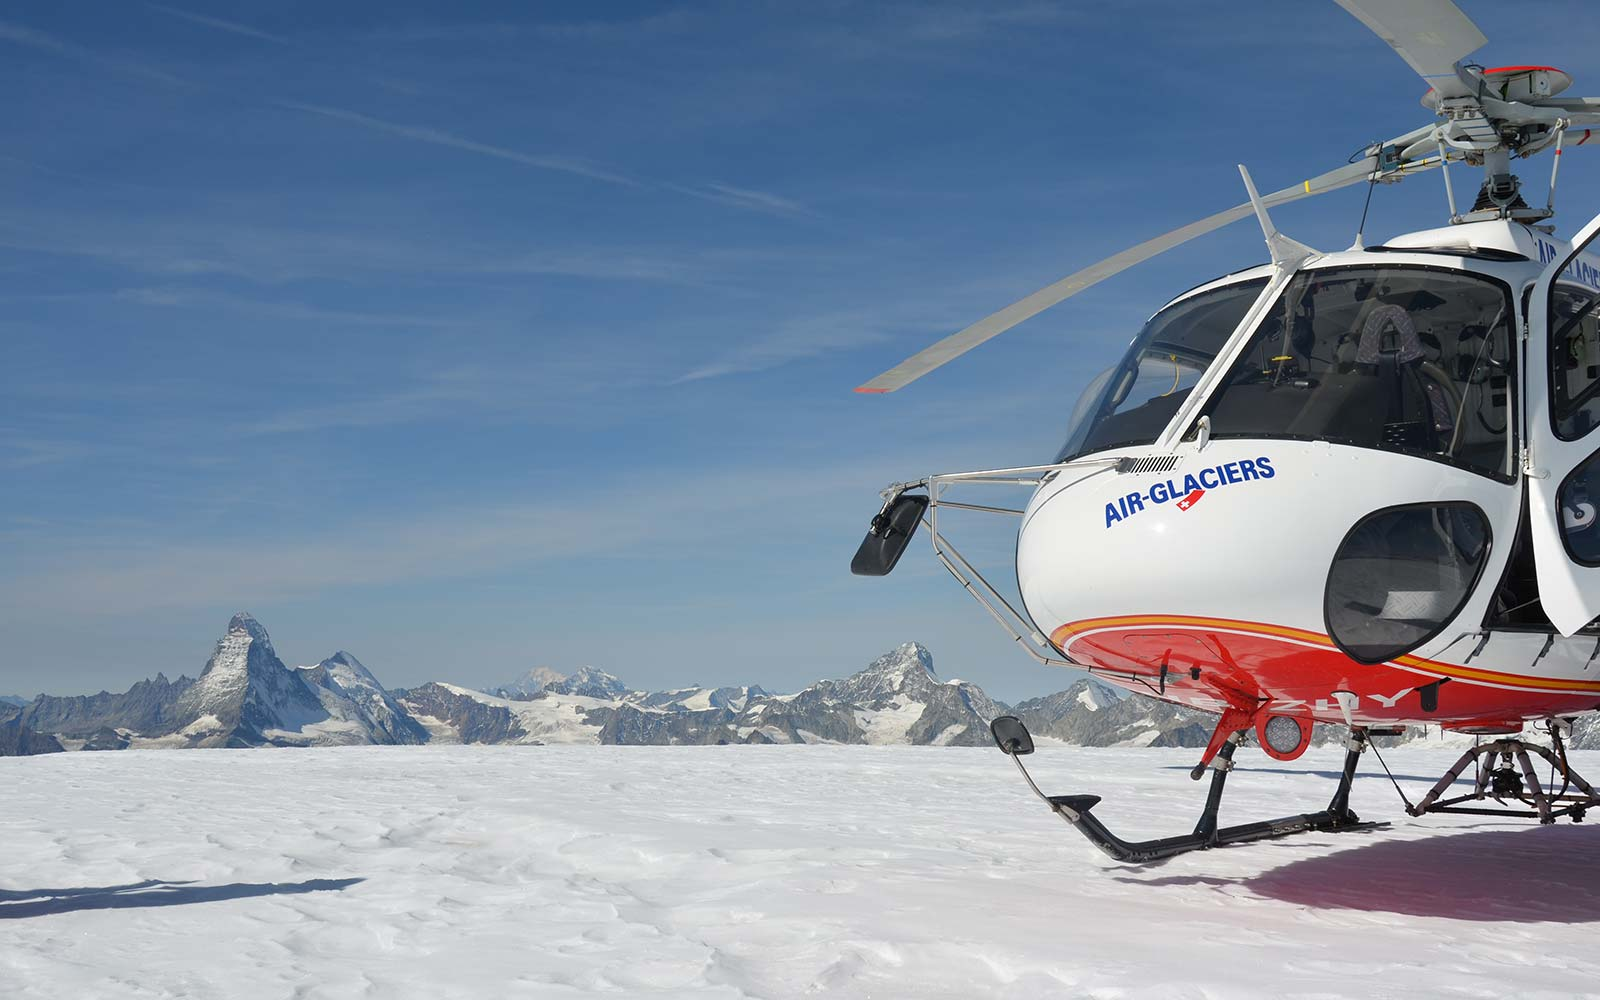 Gstaad Palace Swiss Alps Switzerland Helicopter Winter Experience